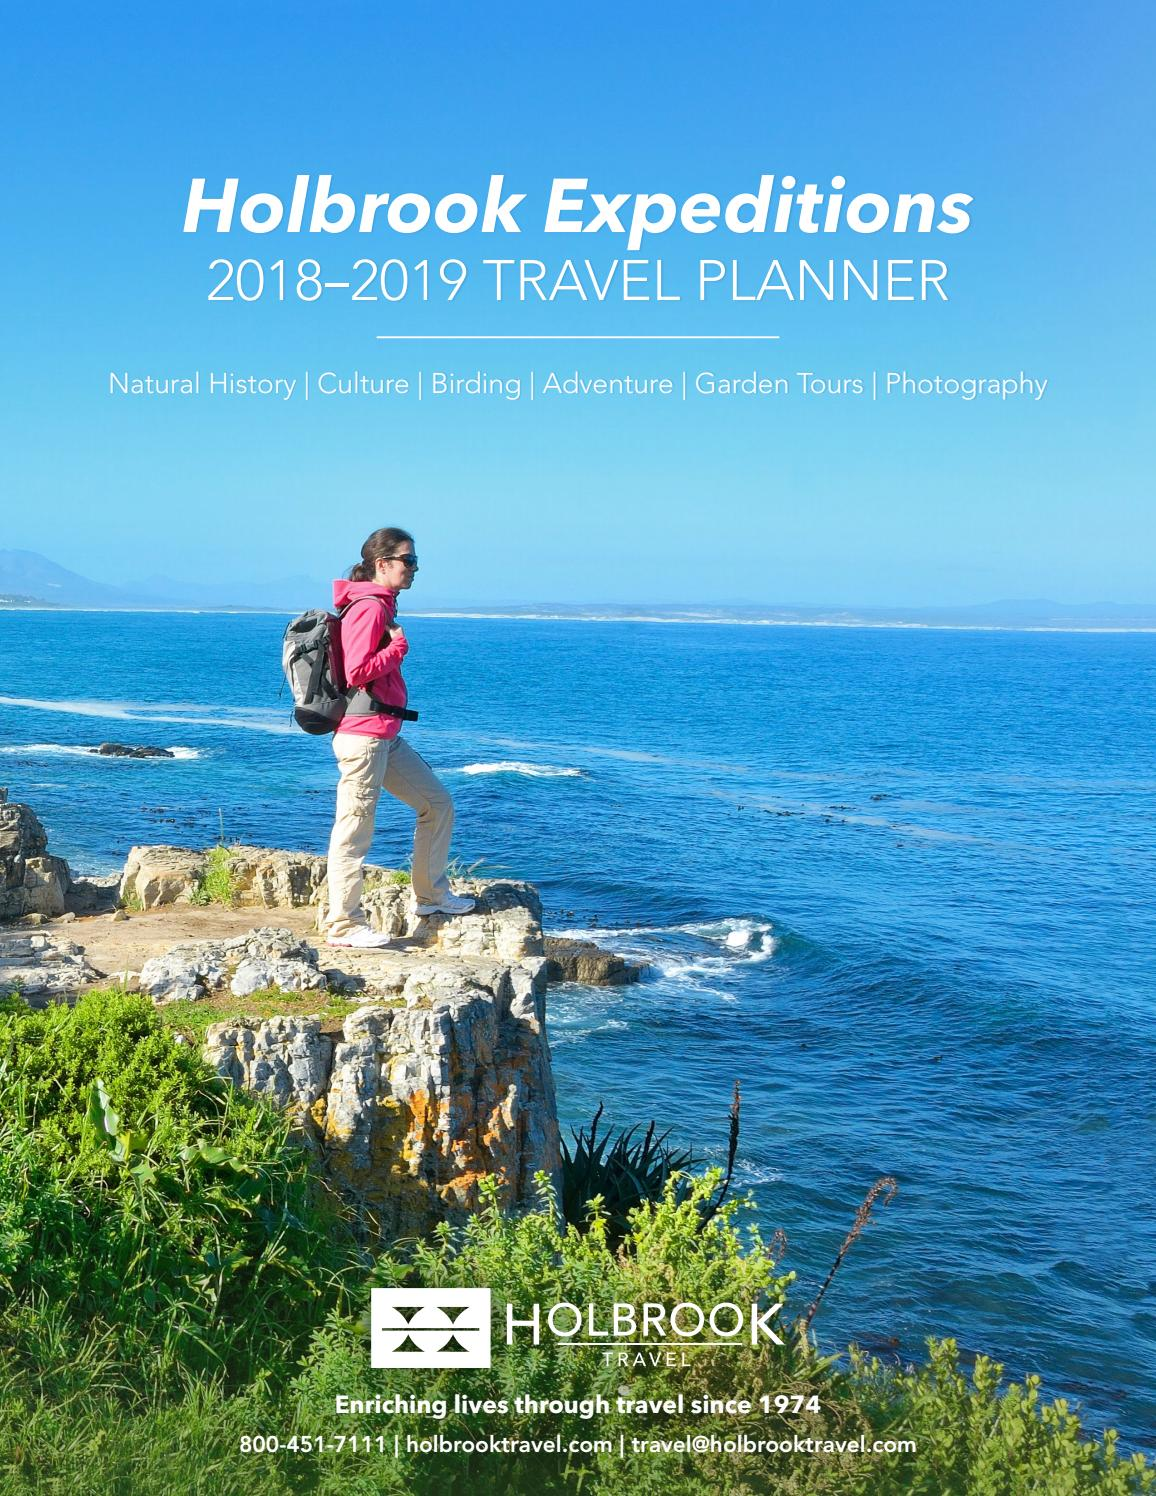 holbrook expeditions 2019 travel planner by holbrook